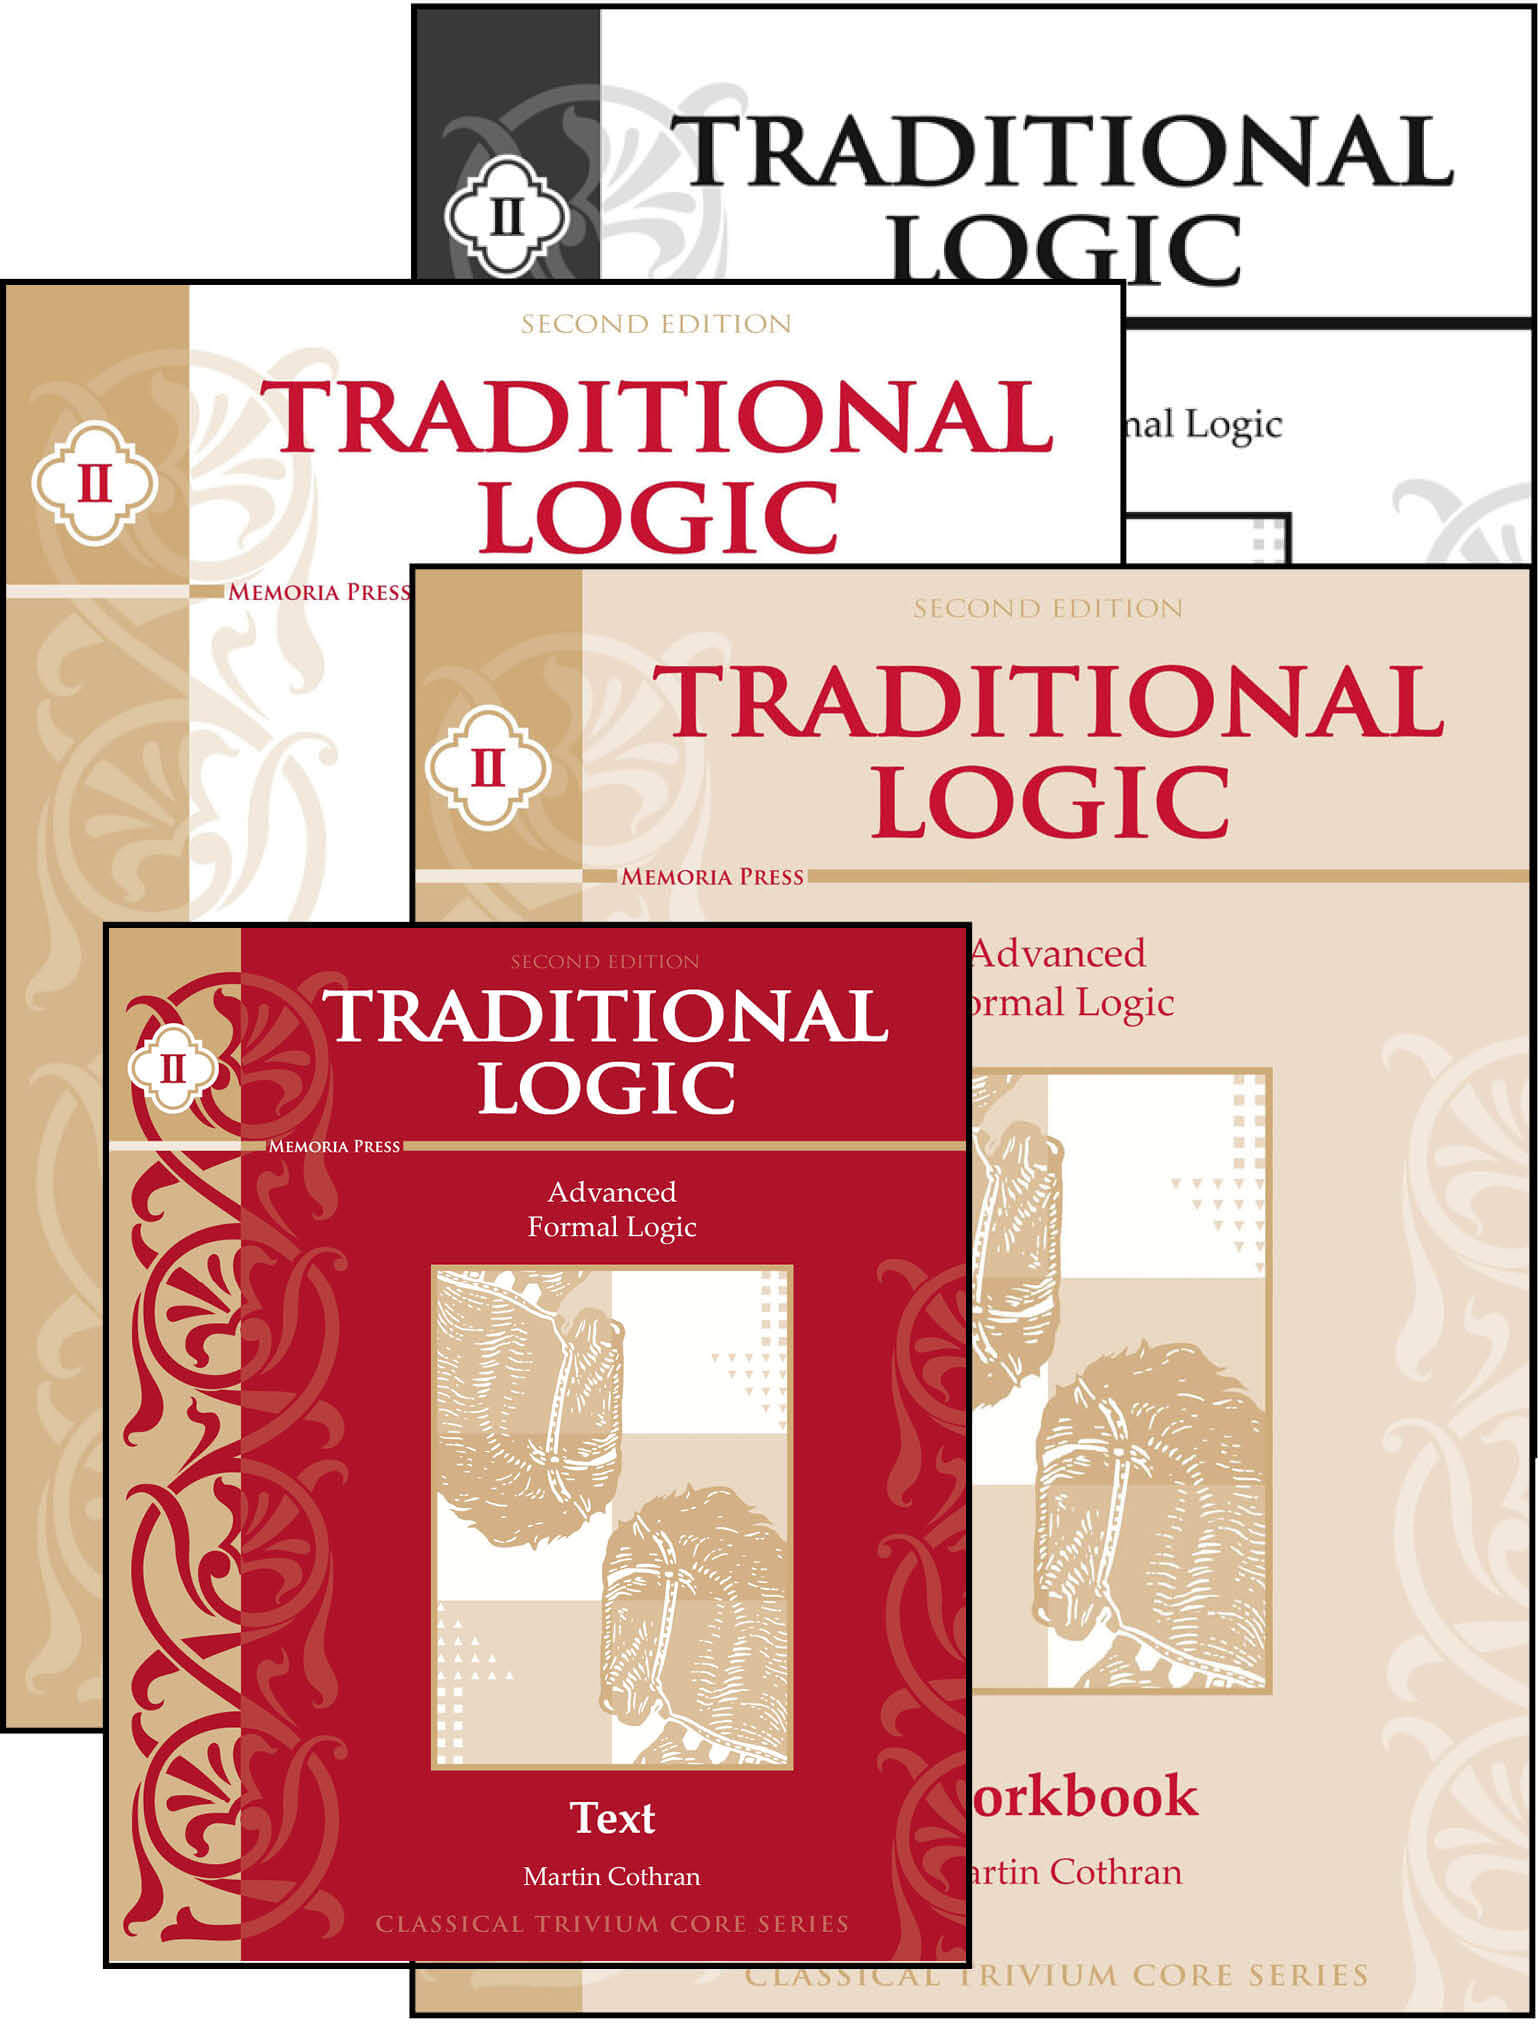 Traditional logic ii basic set memoria press for Tradition logis 38